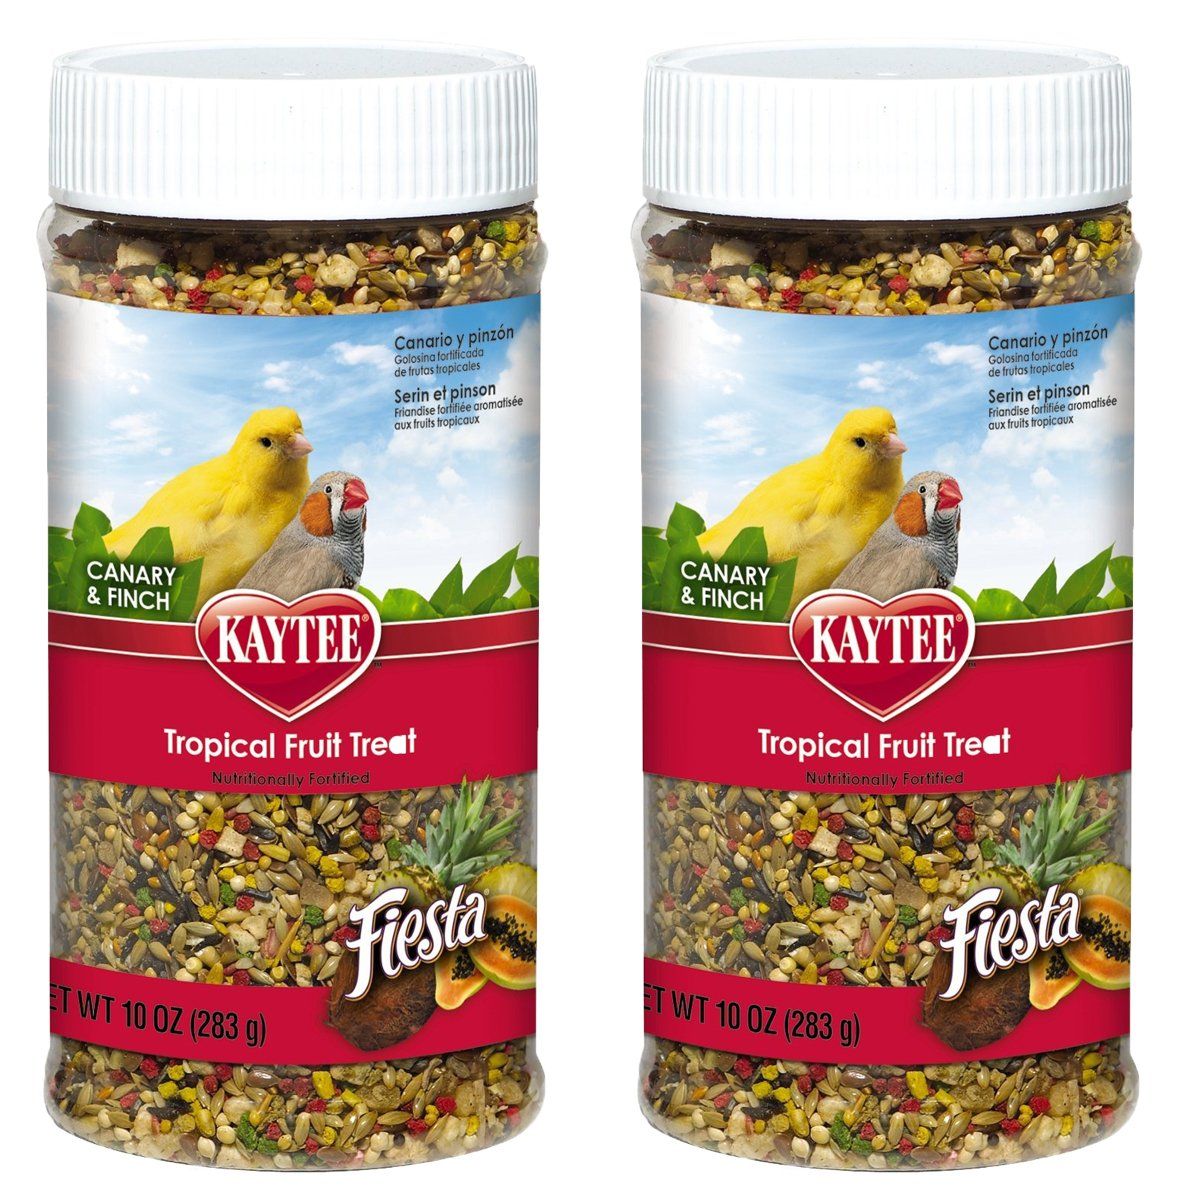 20-Ounce Kaytee Fiesta Tropical Fruit Treat for Canaries & Finches, 20 oz